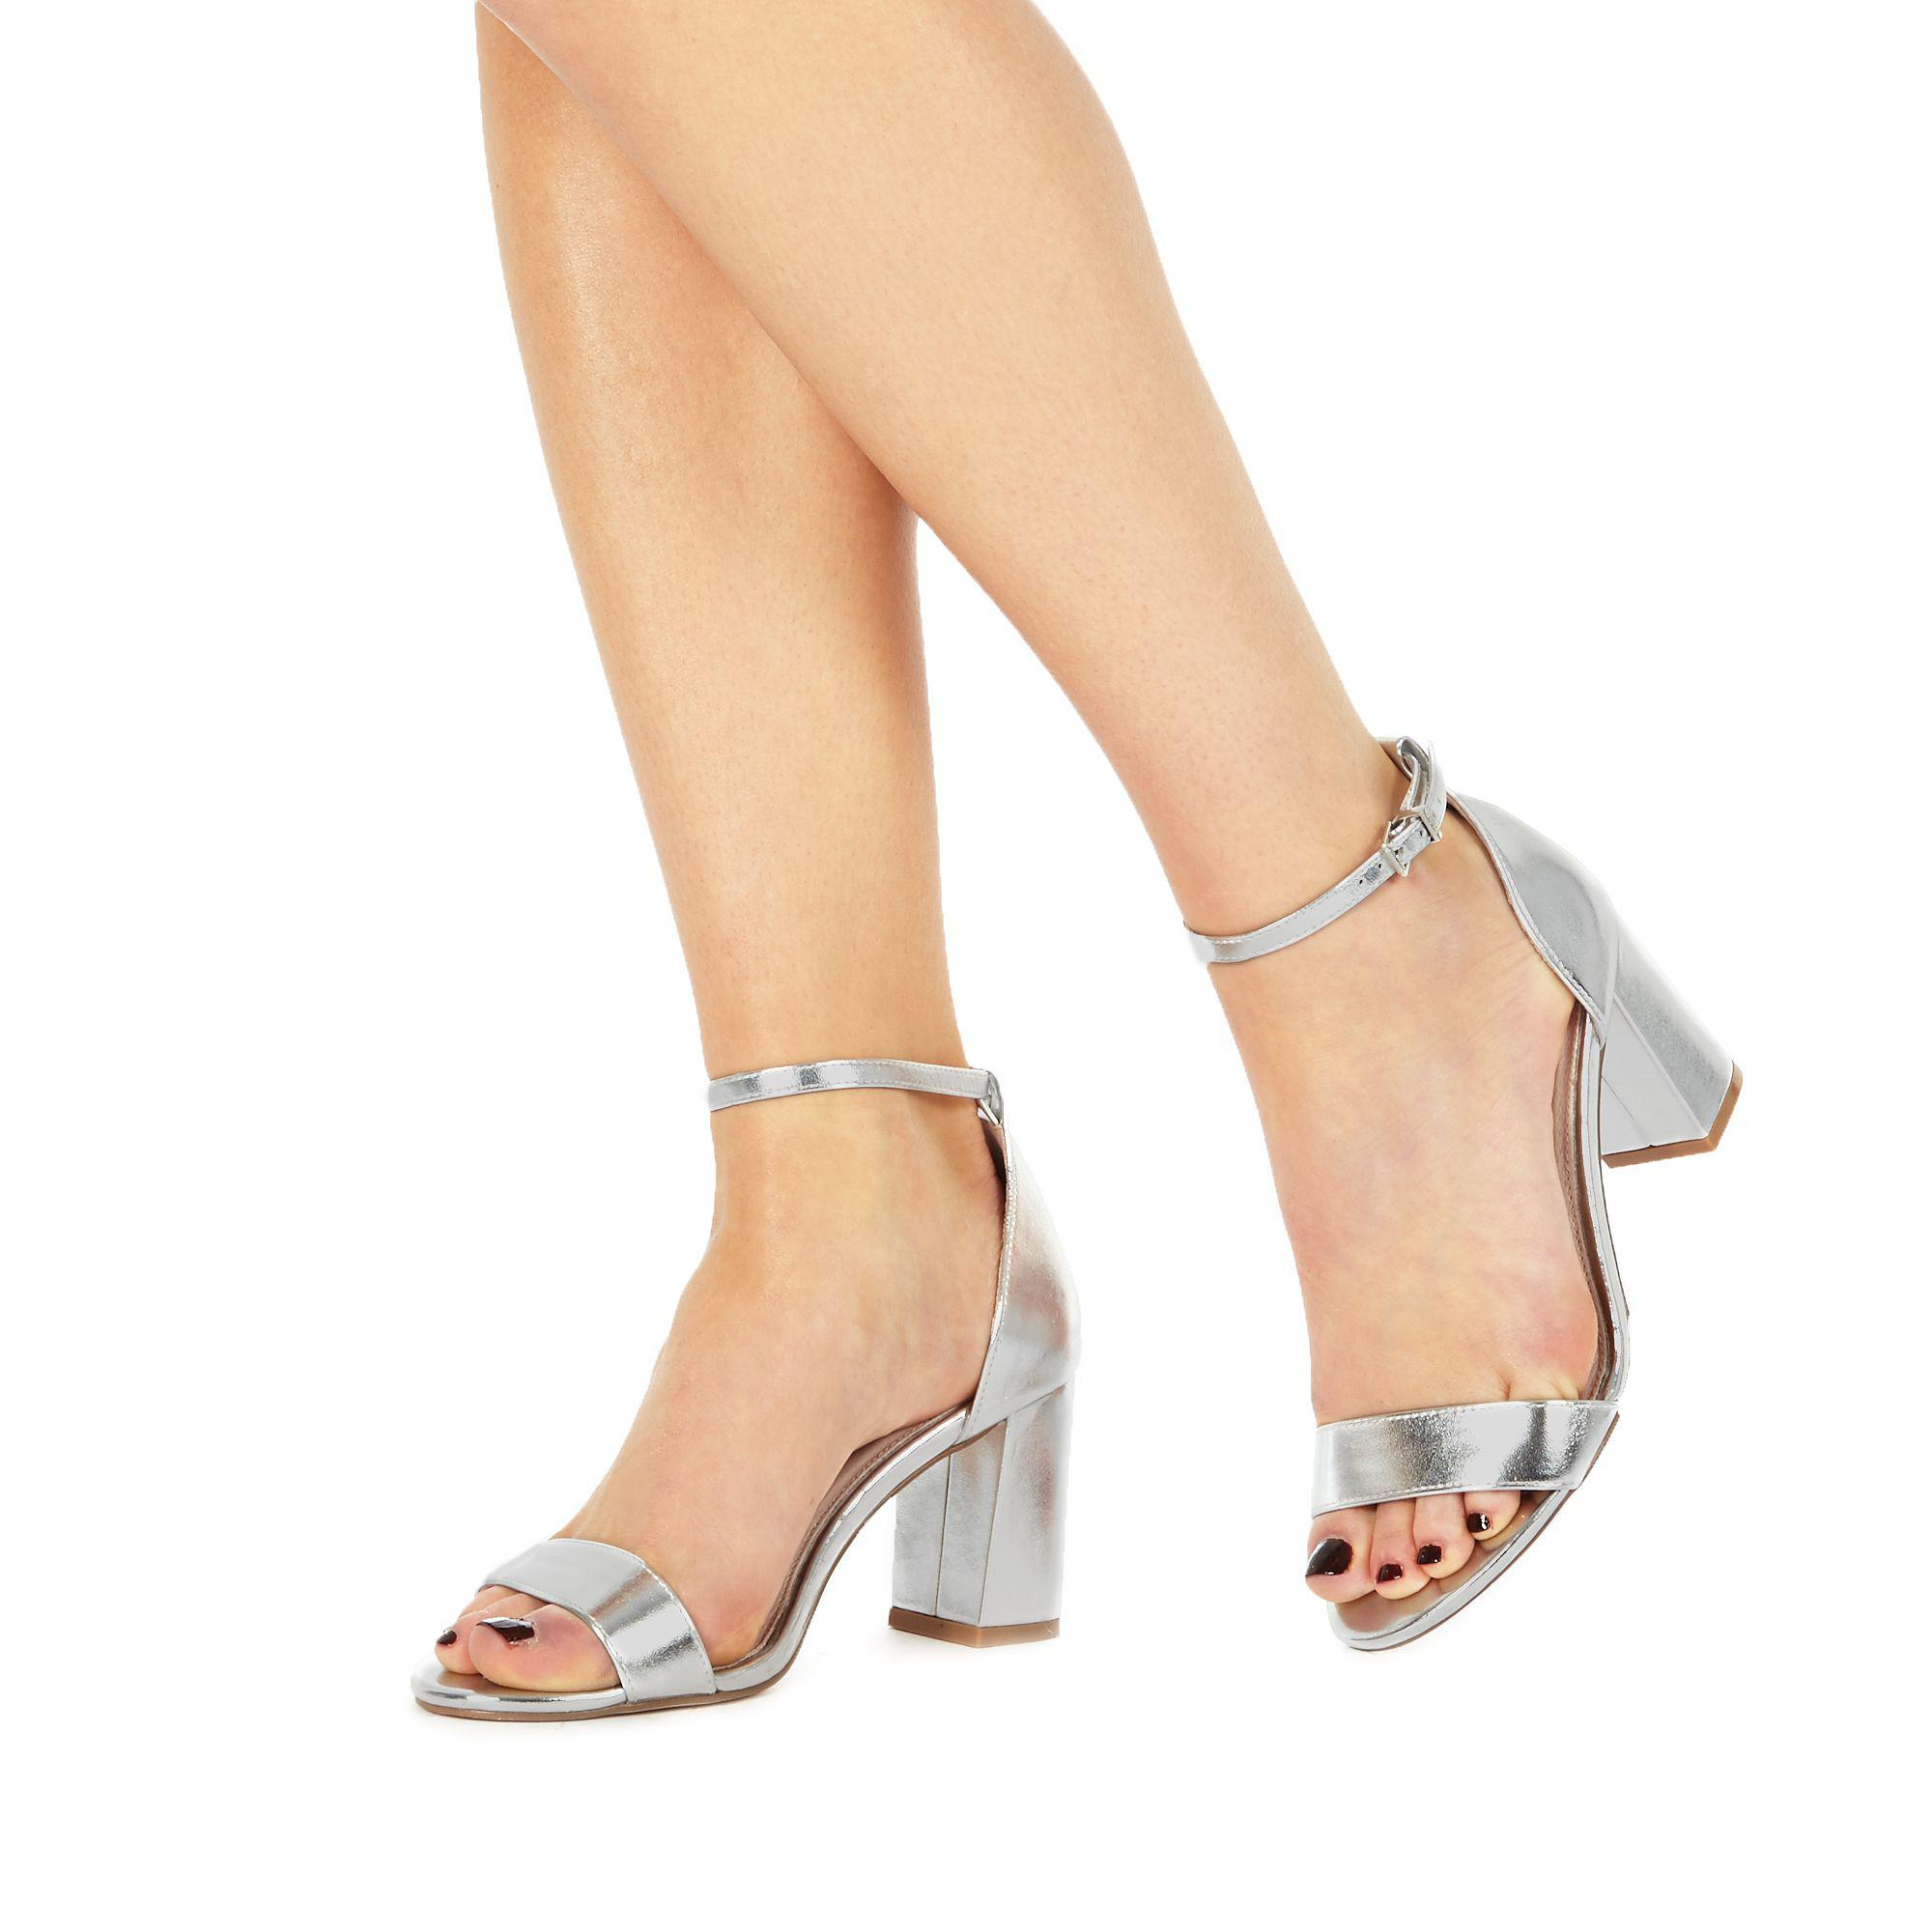 e4ad75551c5 Faith Silver  demi  High Heel Wide Fit Ankle Strap Sandals in ...